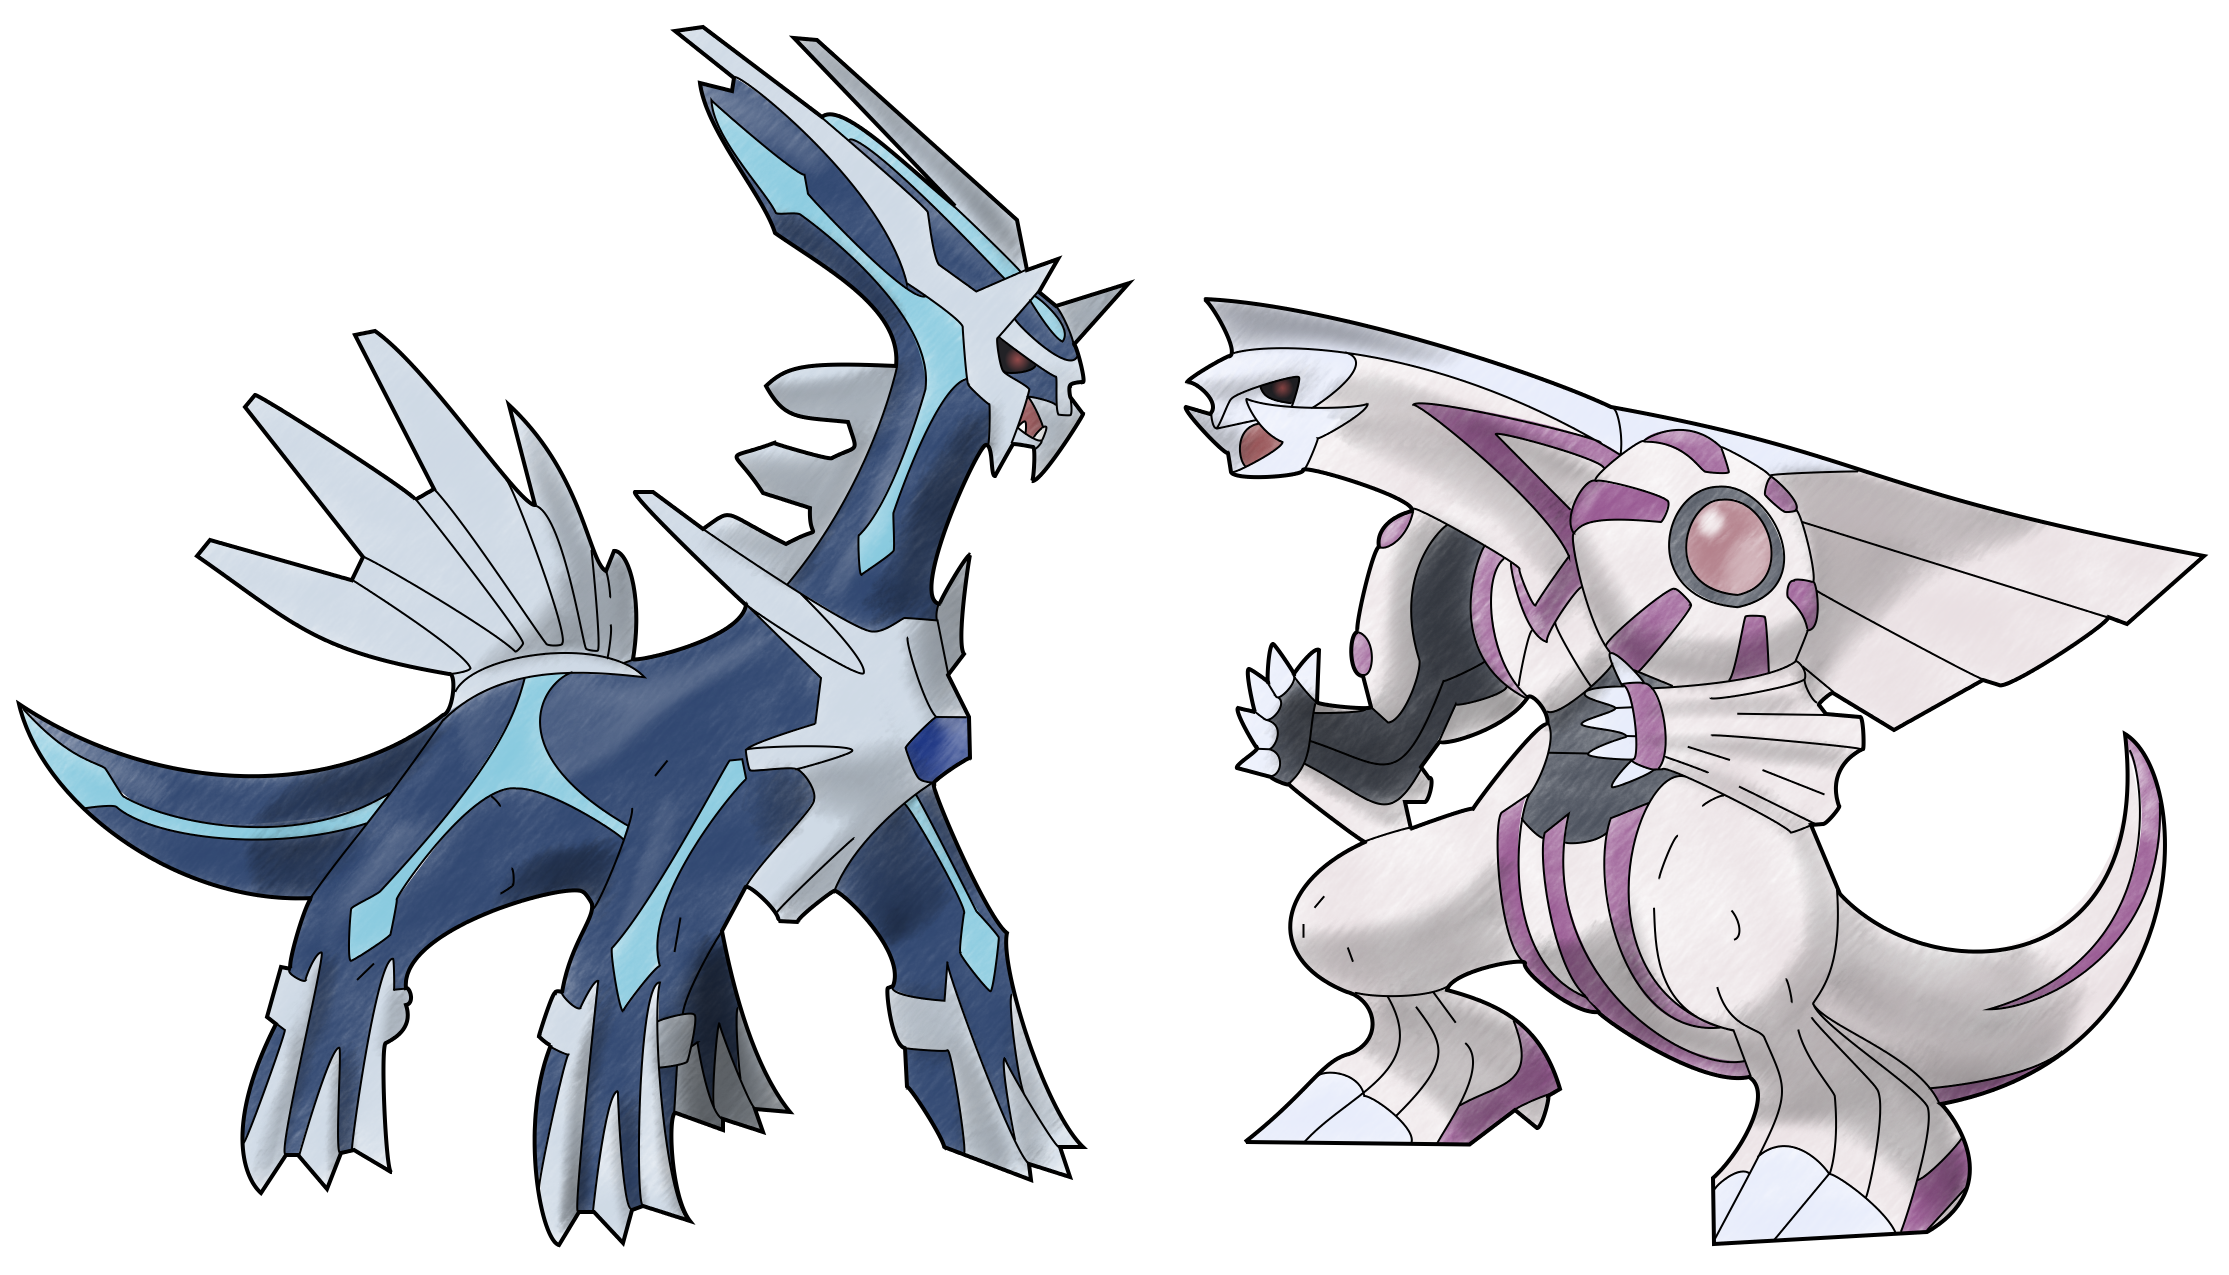 Dialga and Palkia by TheSerotonin on DeviantArt